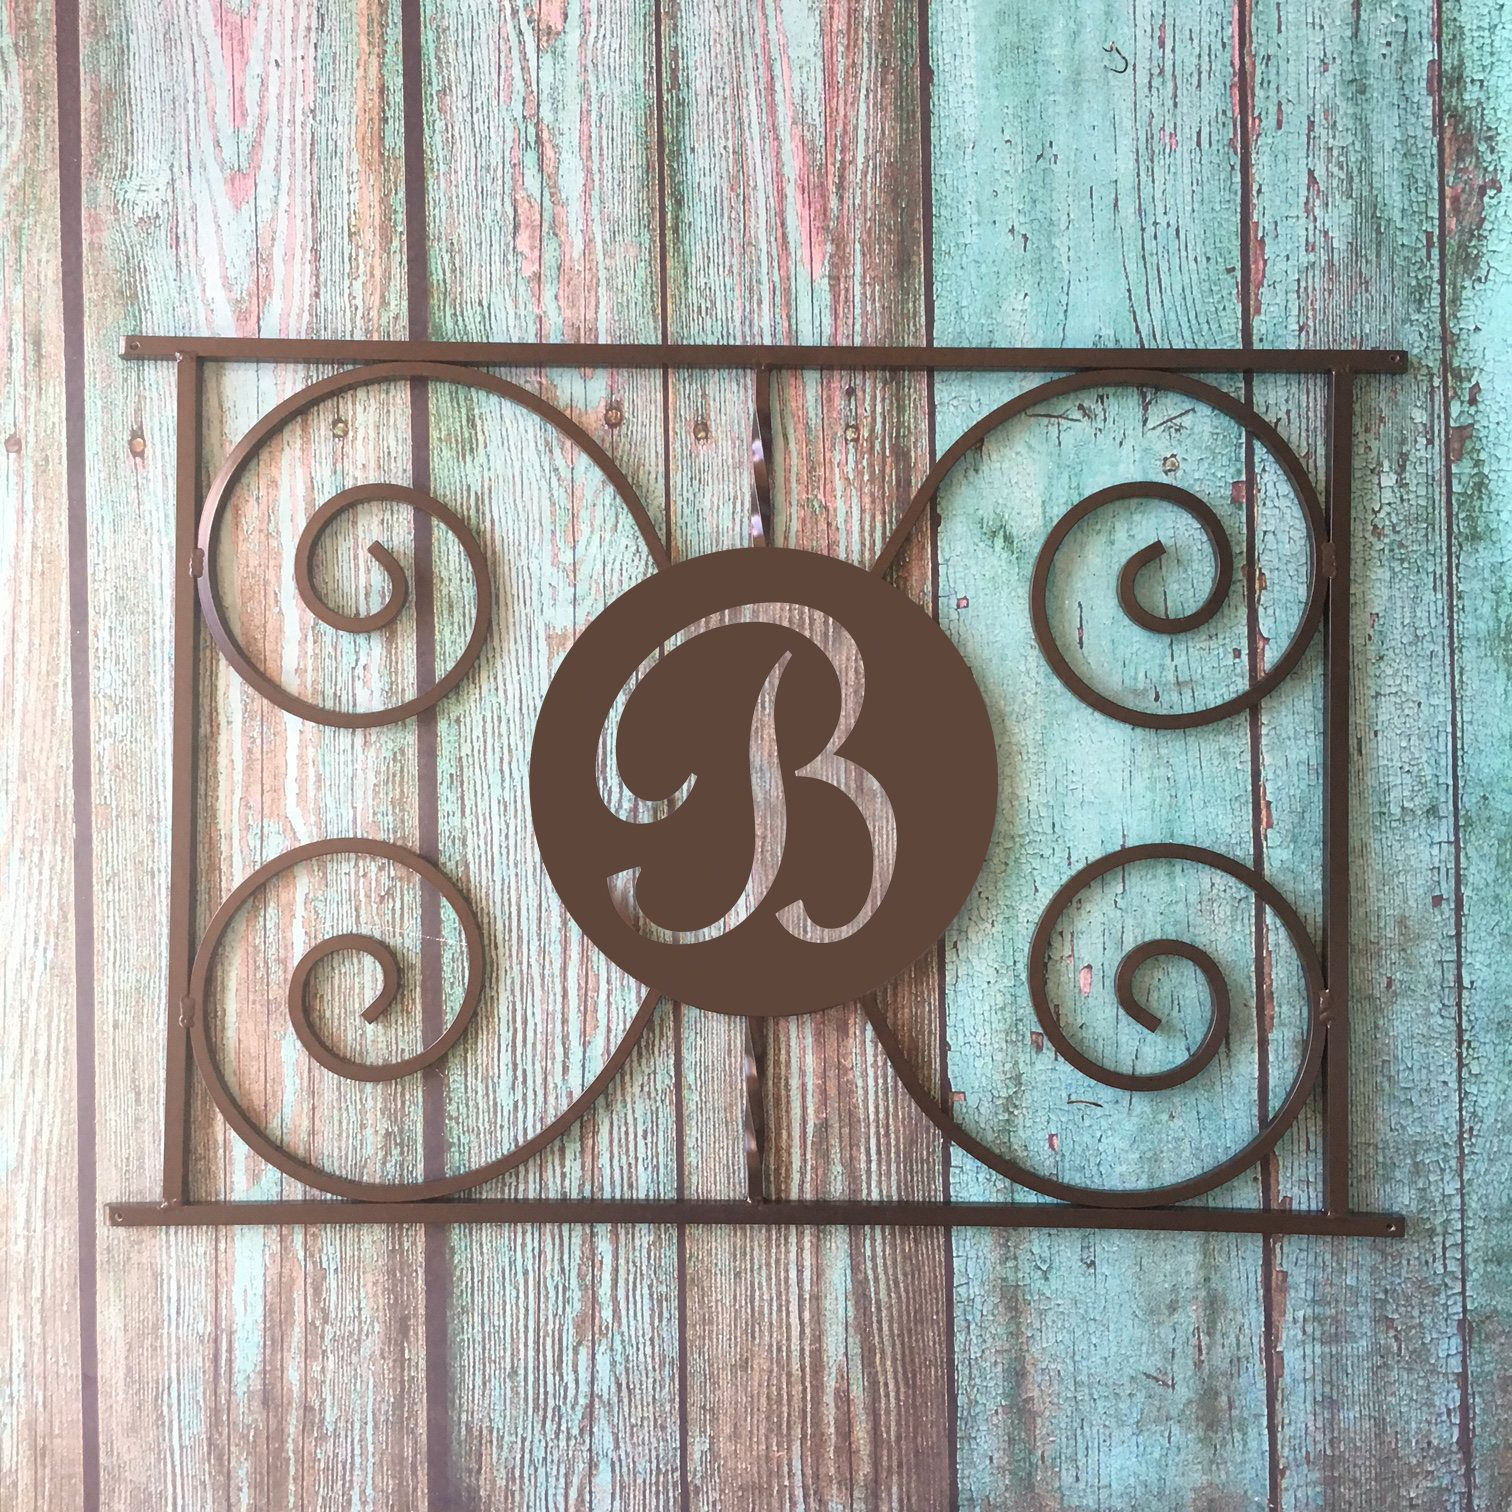 Monogram design screen door grille protect and beautify easy monogram design screen door grille protect and beautify easy install handcrafted vtopaller Image collections